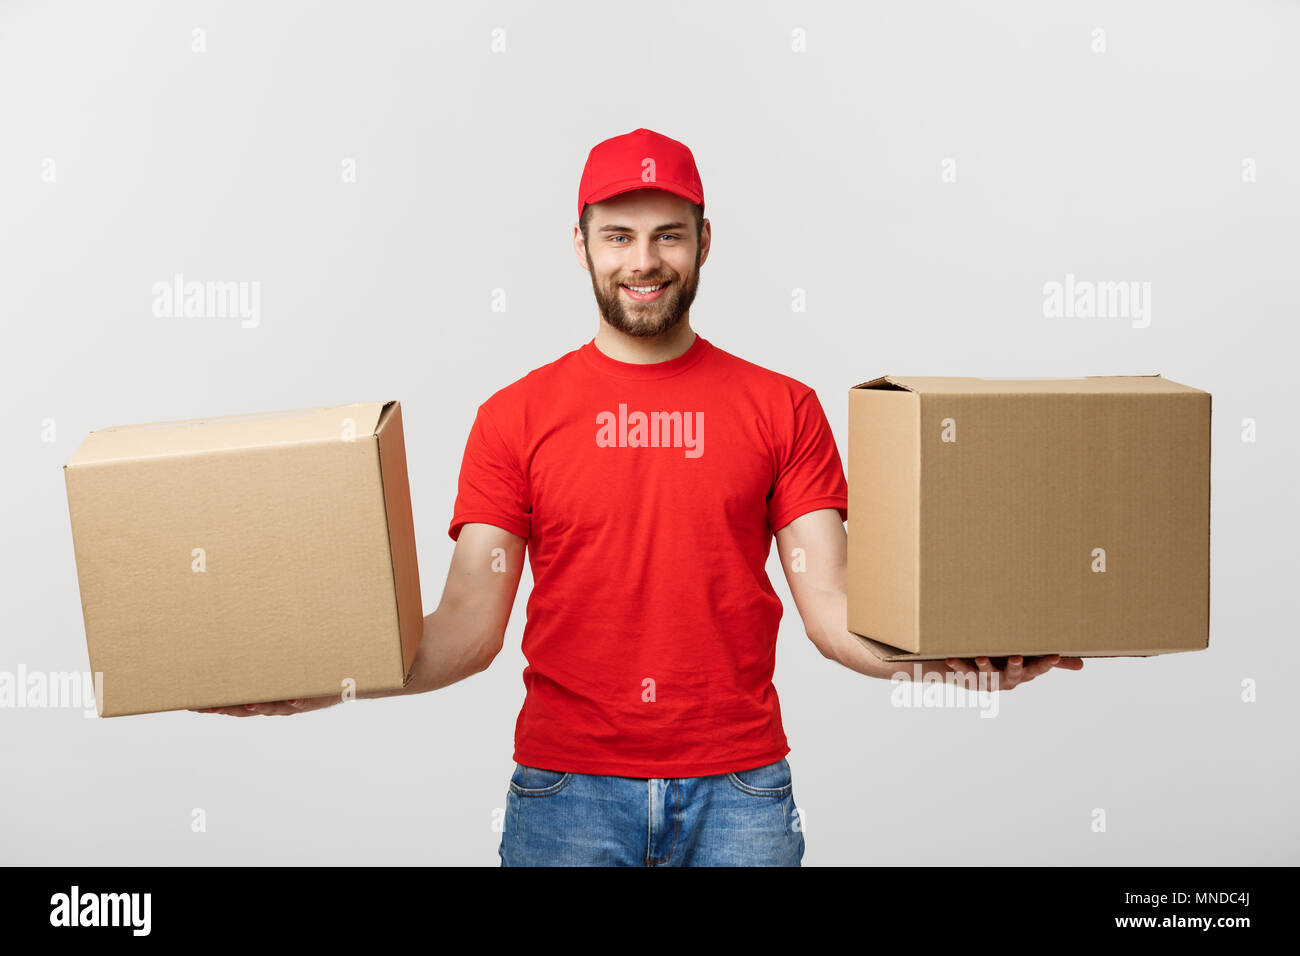 Delivery Concept: Portrait smiling delivery man giving cardbox on white background. - Stock Image